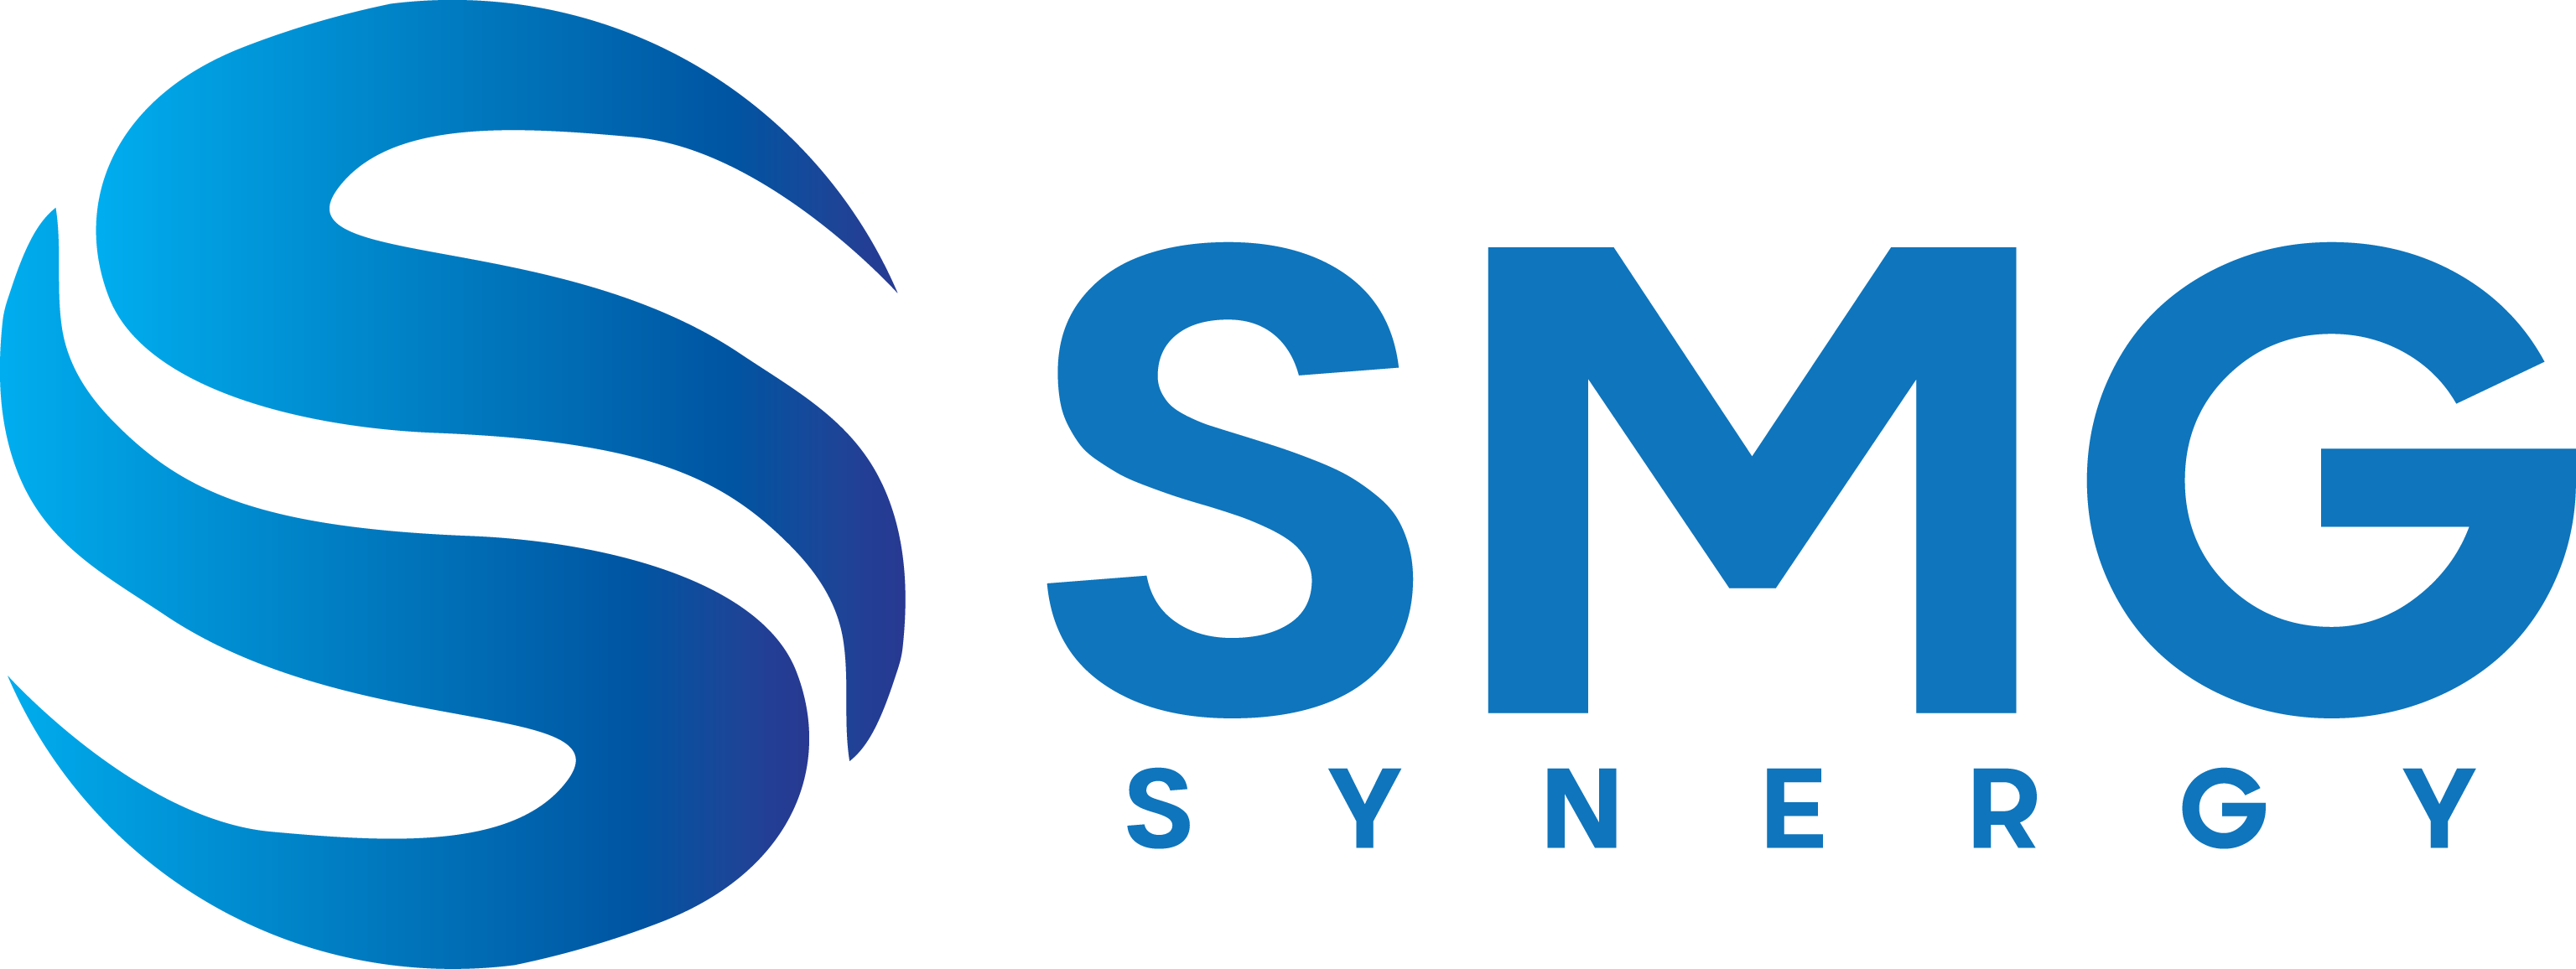 SMG Synergy Announces Launch of Sales Training & Business Development Service